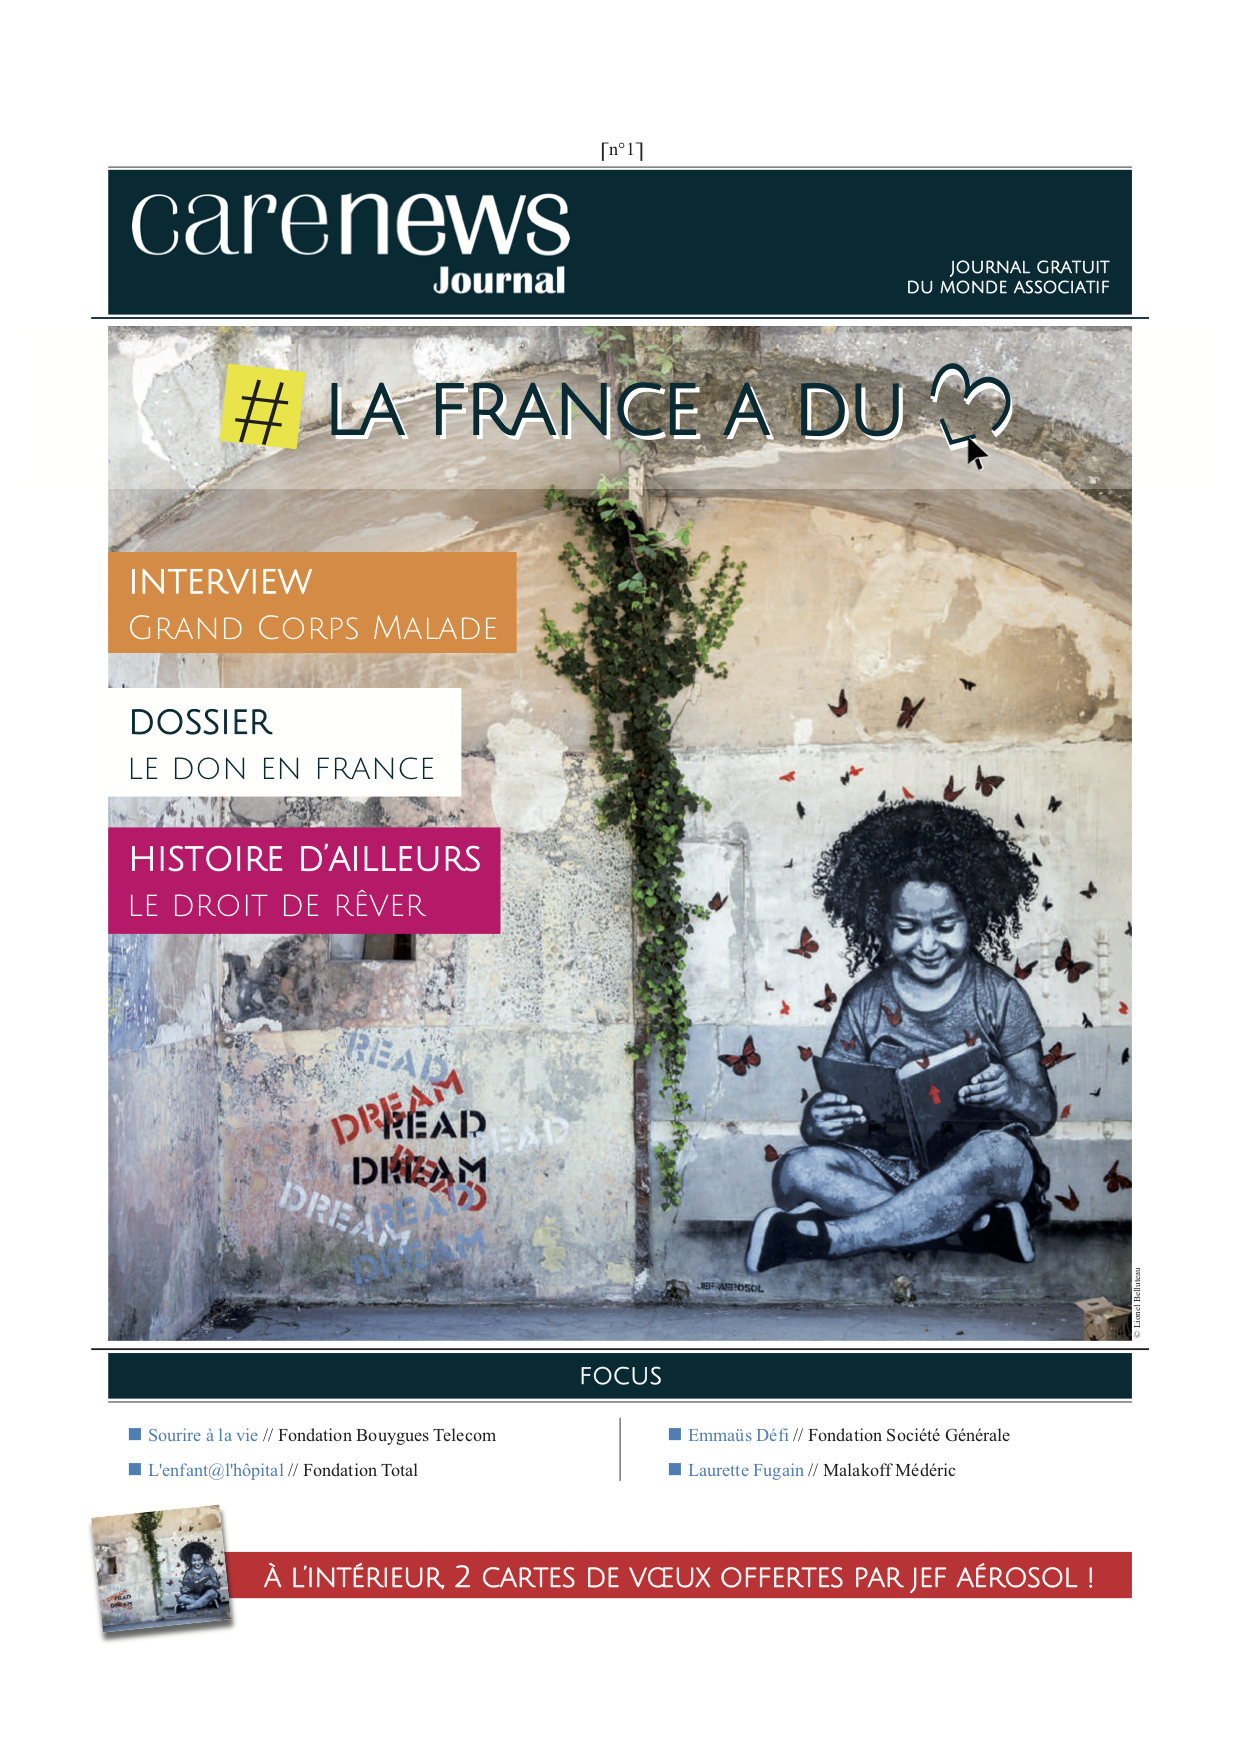 Carenews Journal n°1 - La France a du coeur